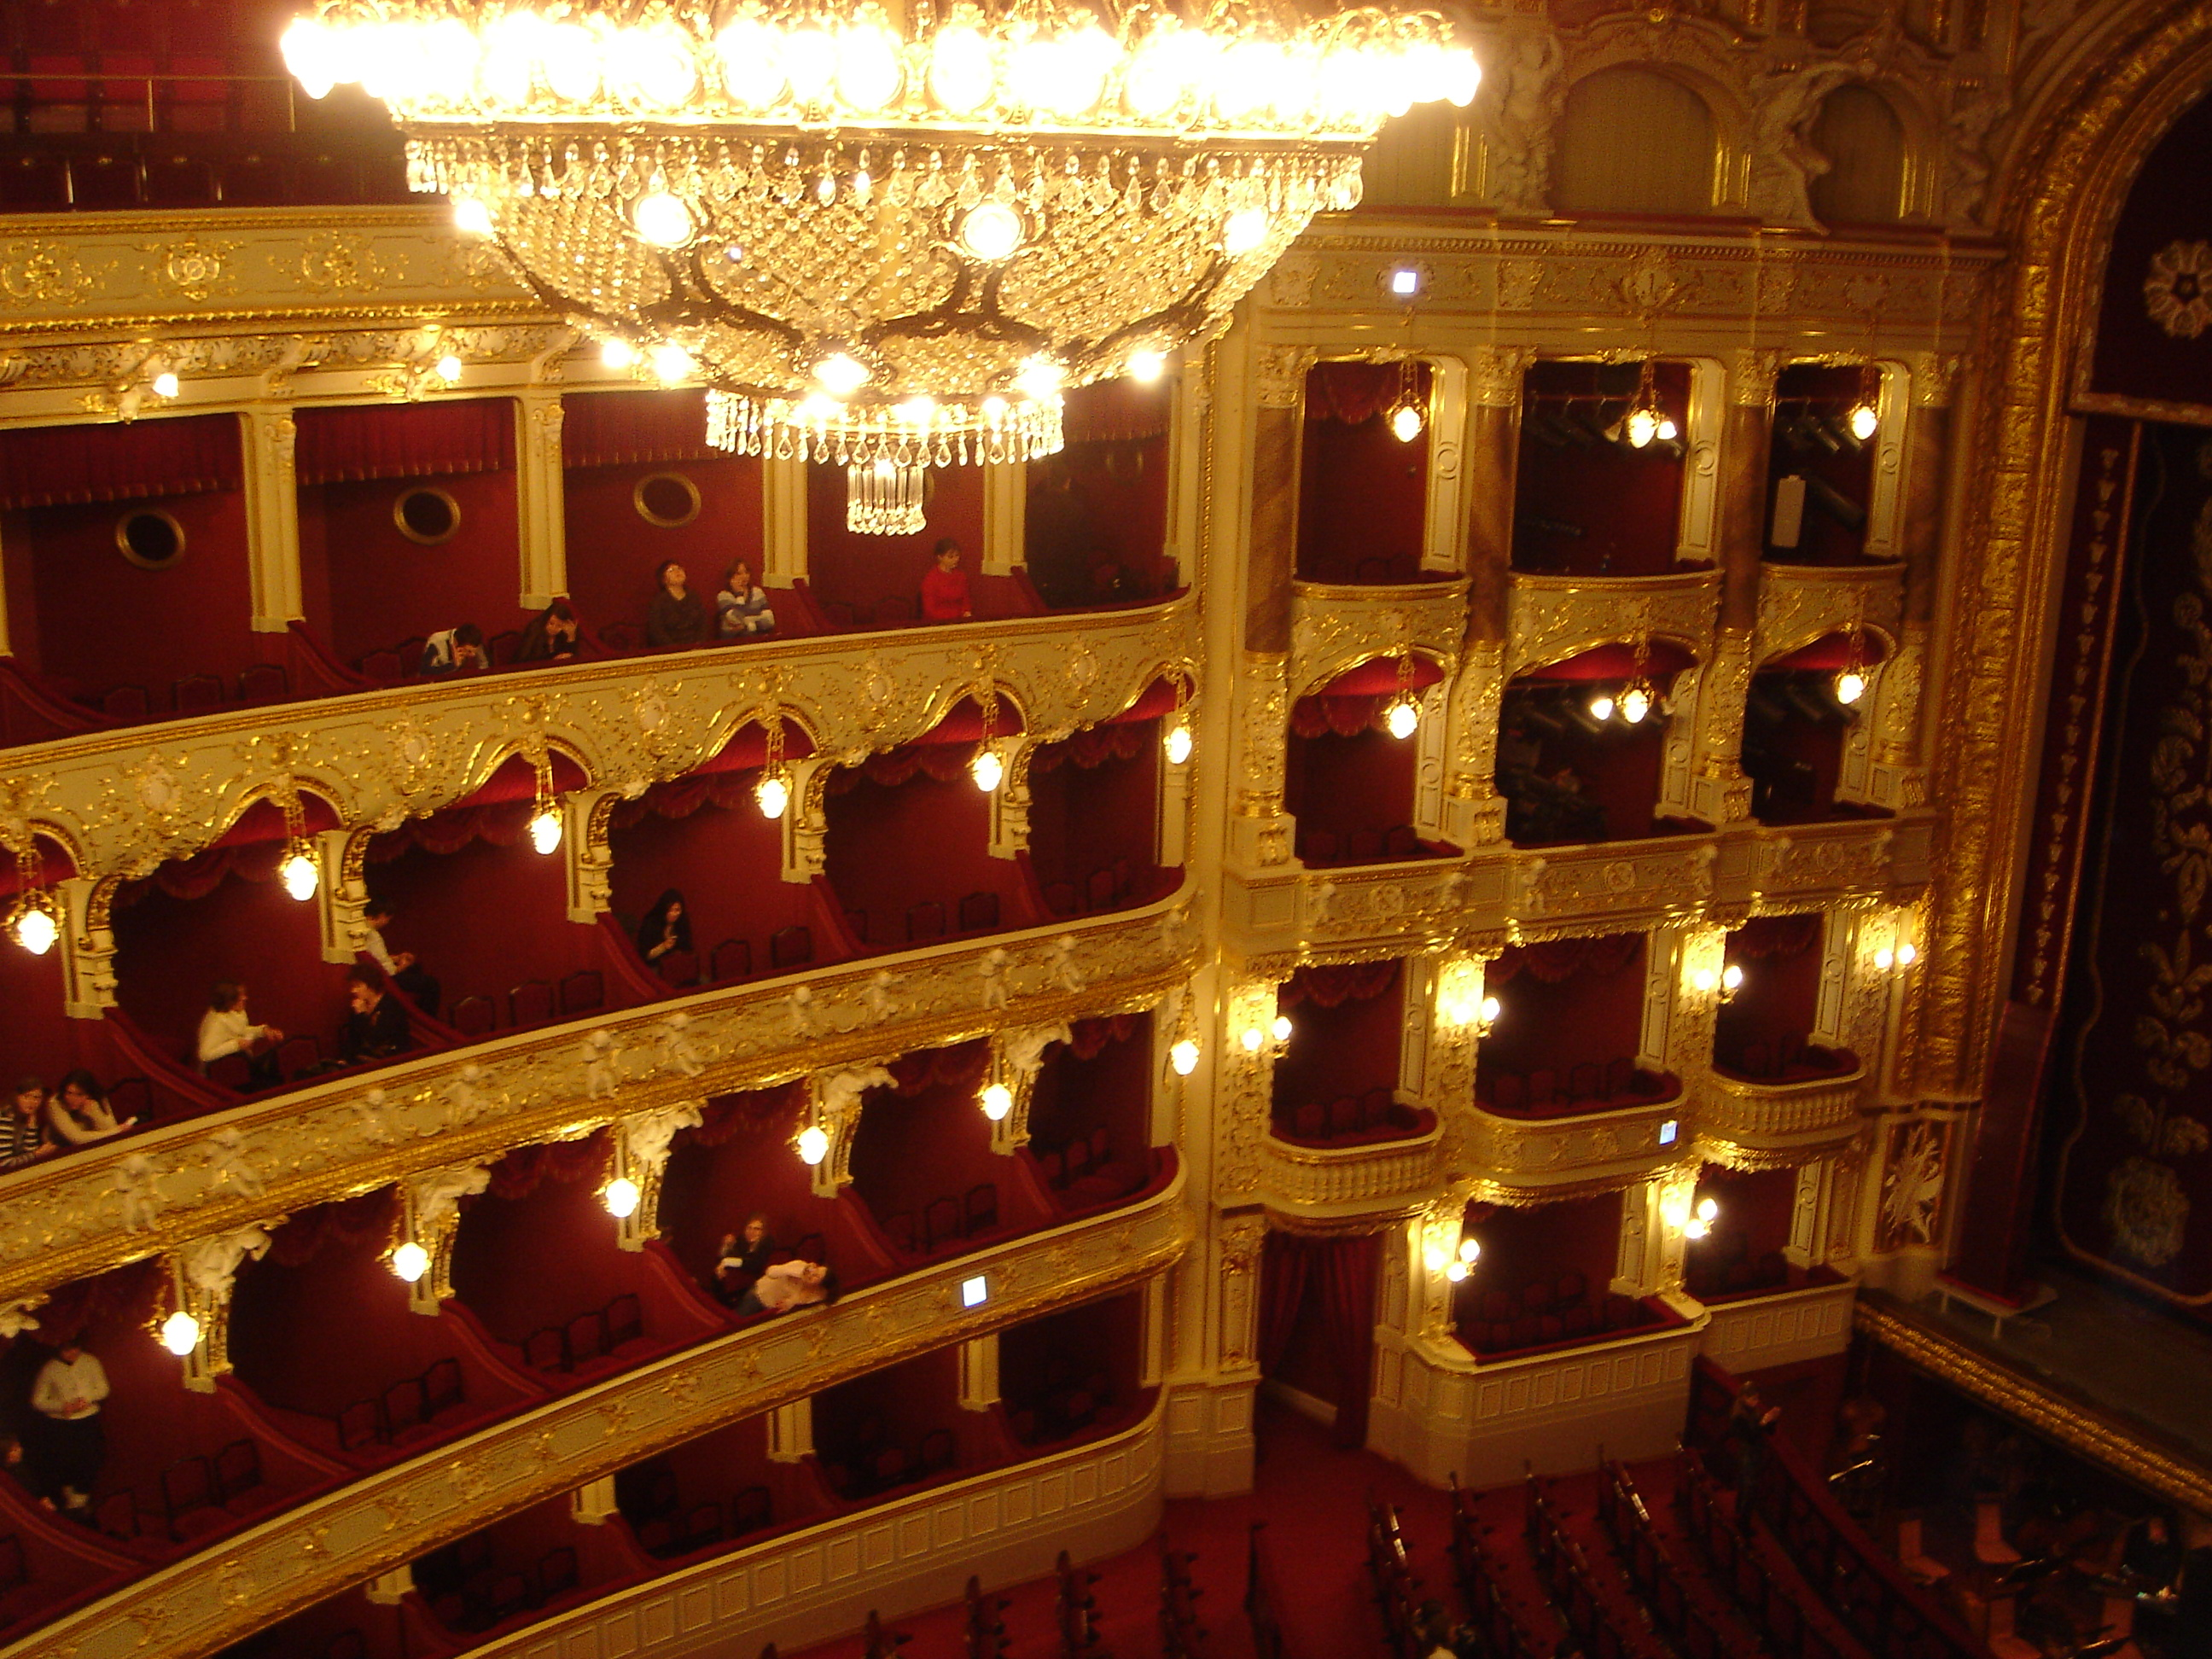 Interior of Odessa opera theater.